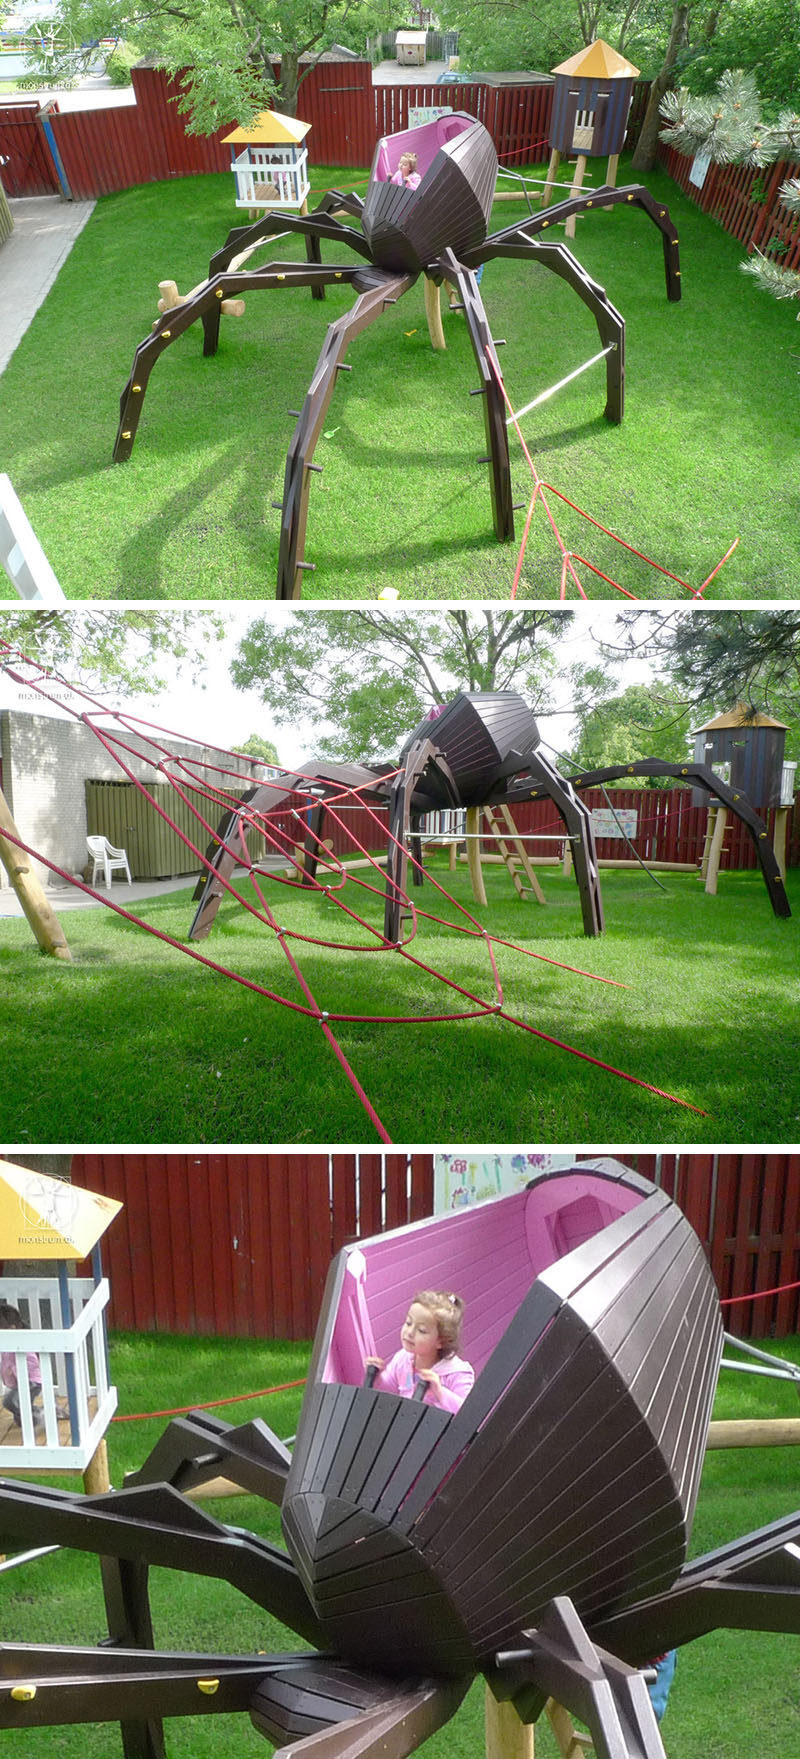 15 Amazing, Unique And Creative Playgrounds // A Huge Spider and Web